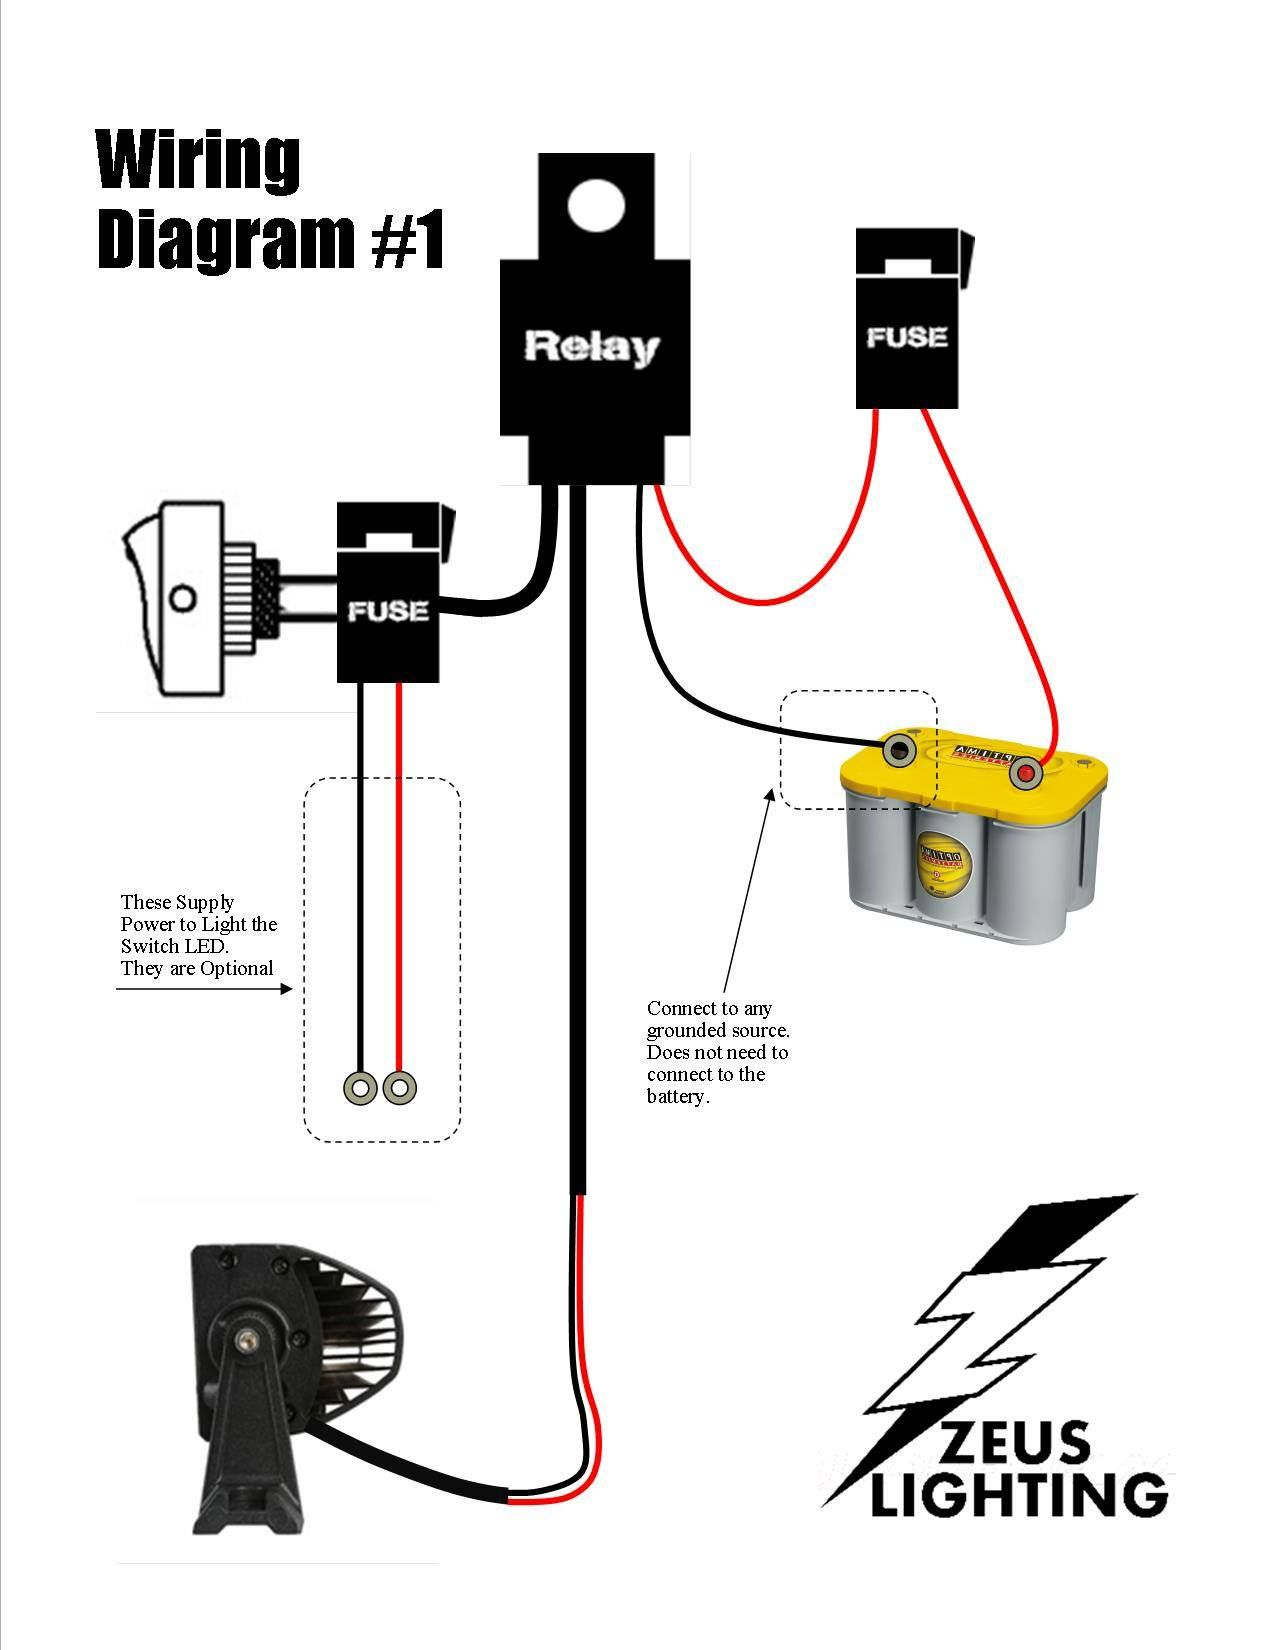 7b0b7aea0a7ad4ad1a755e54db3487b7 essentials to keep in the truck (packed) glockner auto EZ Wiring Harness Diagram Chevy at edmiracle.co